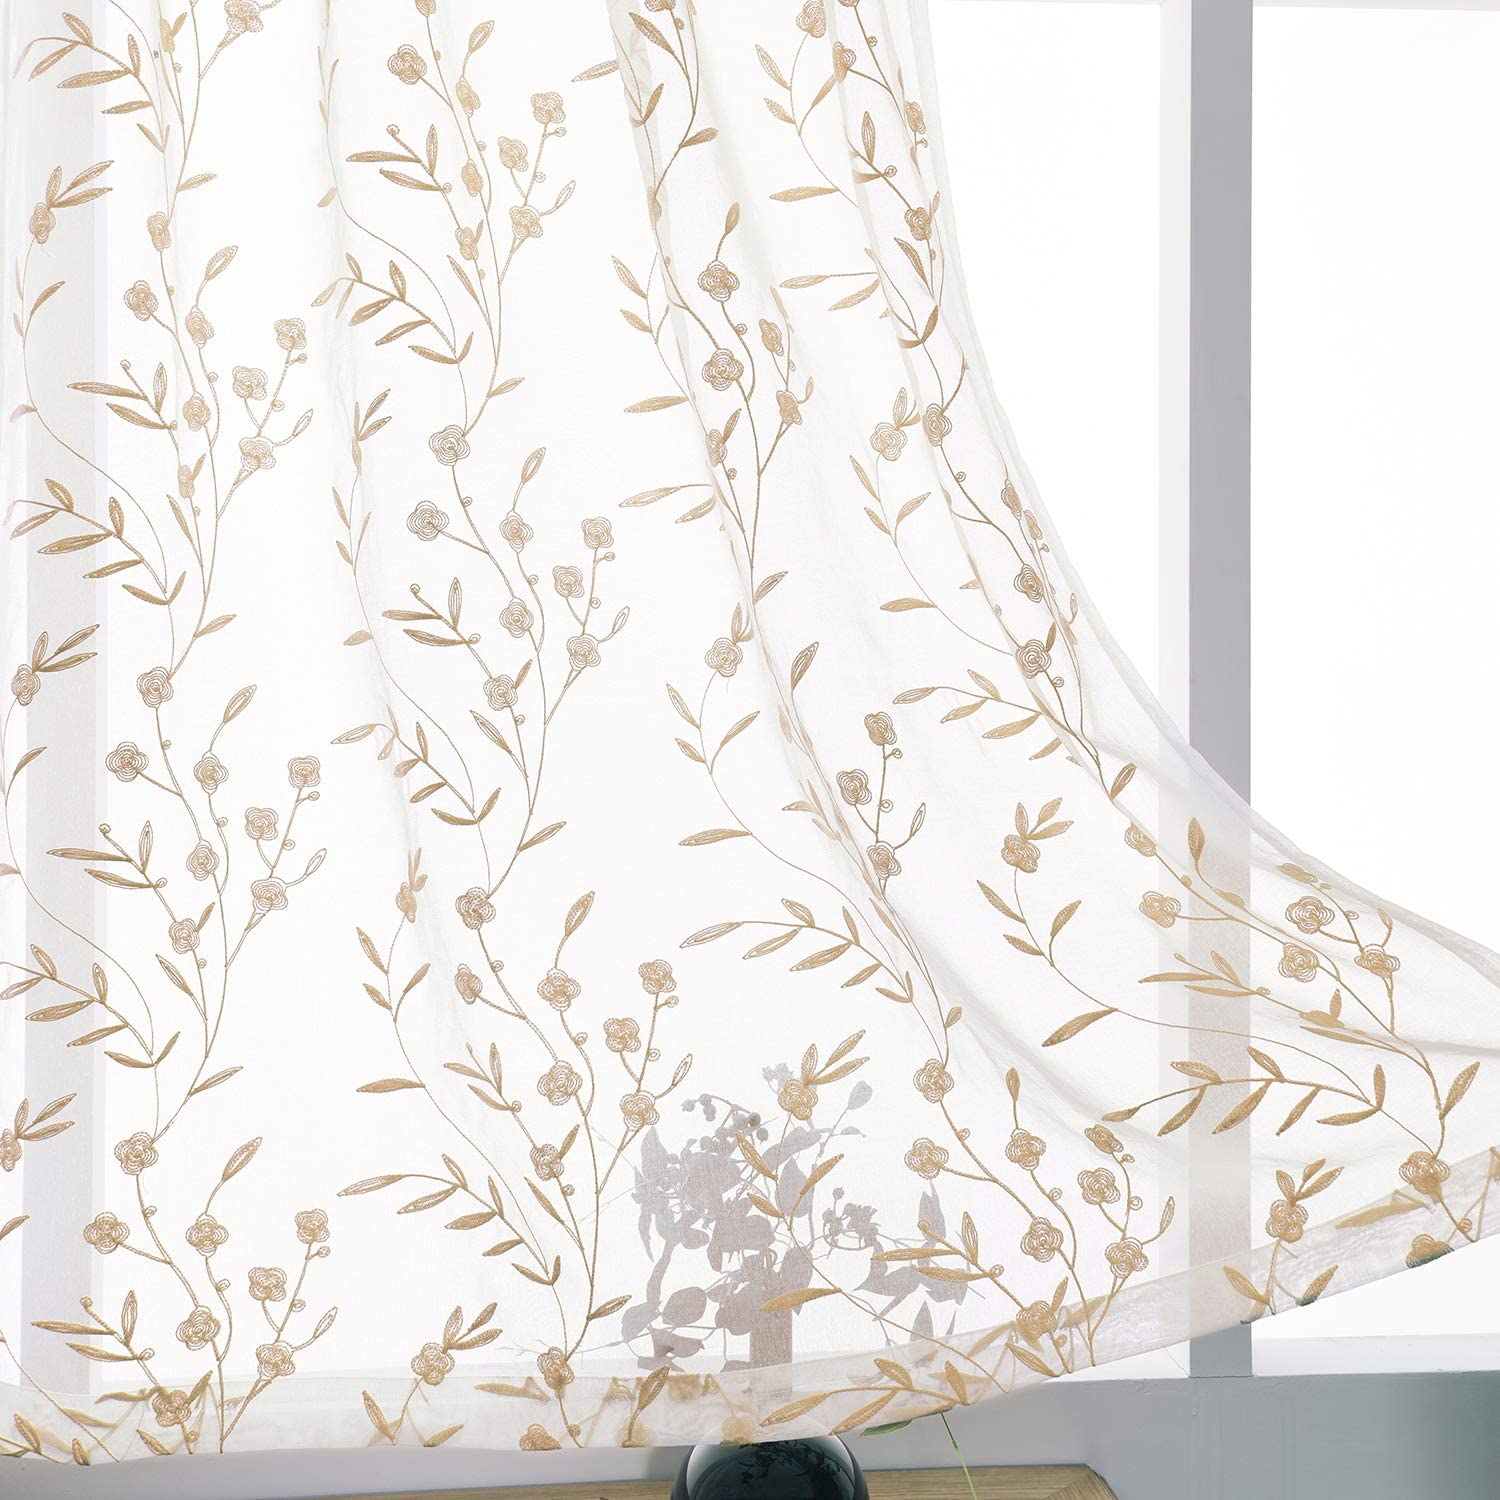 Beige Sheer Charlotte Free shipping anywhere in the nation Mall Curtains Embroidery 63 Rod Inch Voile Pocket Length